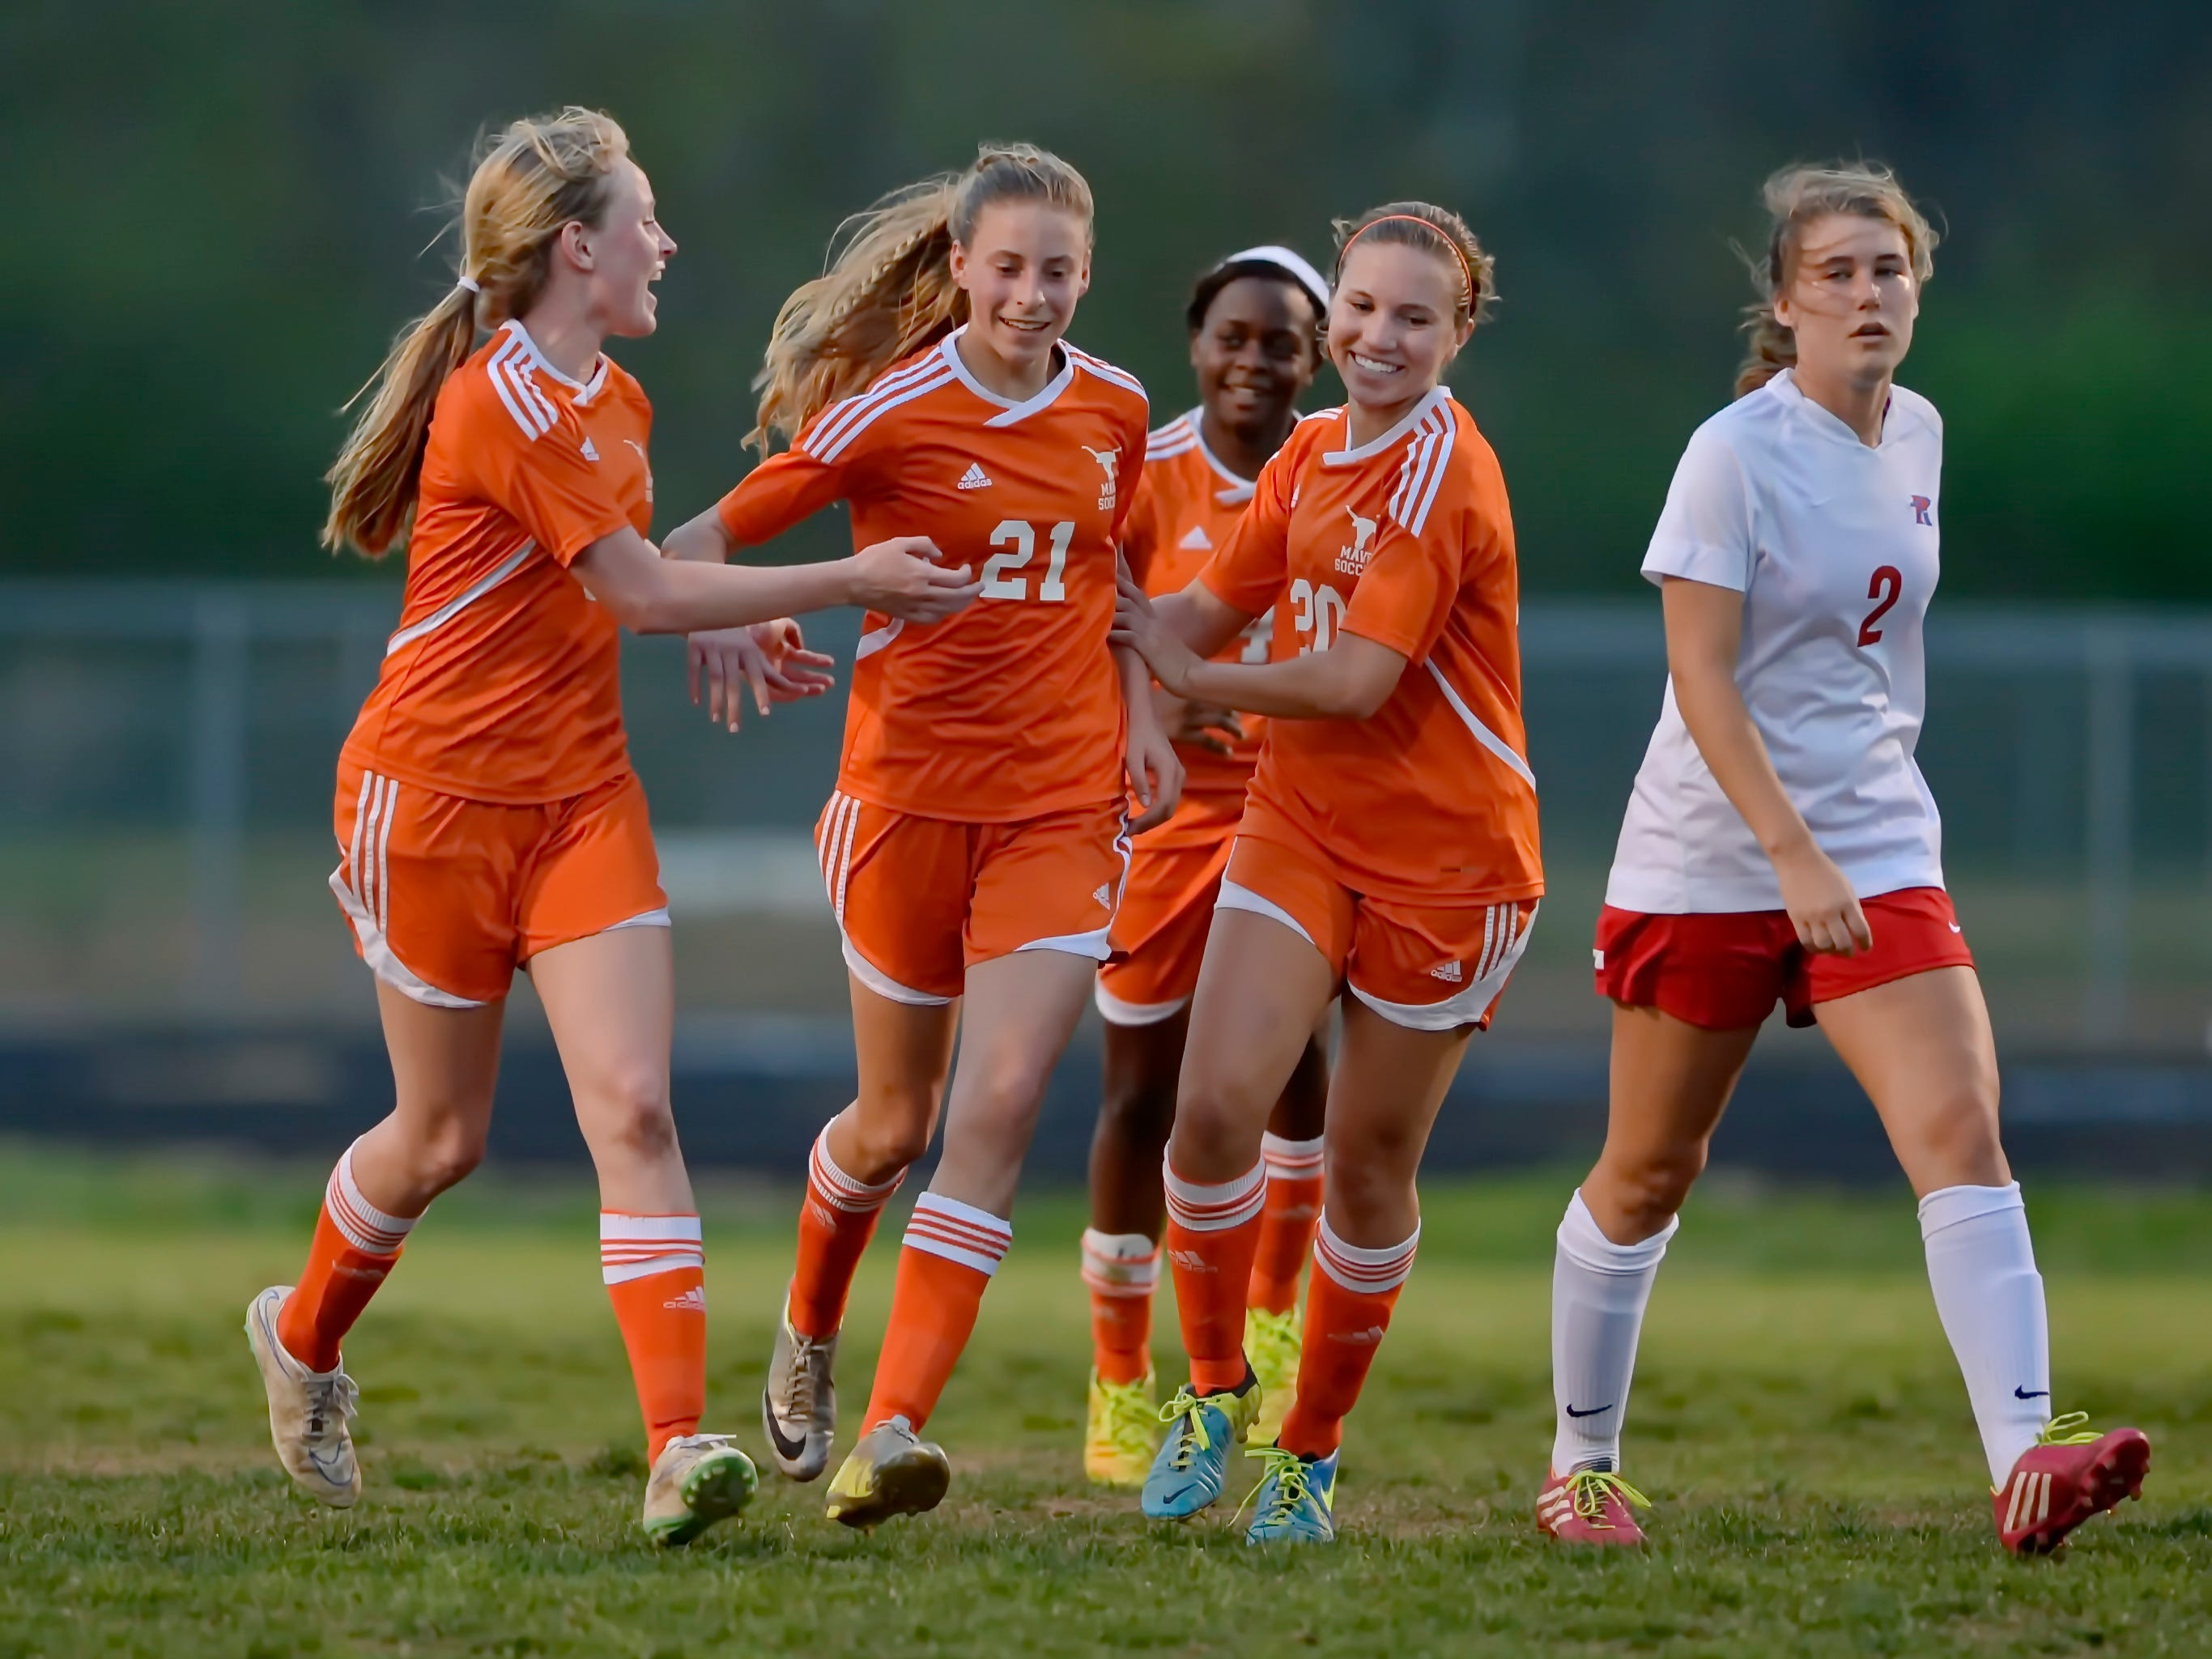 Mauldin's Renee Guion (21) celebrates her first half goal with teammates Reece Diaz-Verry, right, Samantha Britt, left, and Meghan Edwards during the Mavericks' 3-0 win at Riverside Thursday.